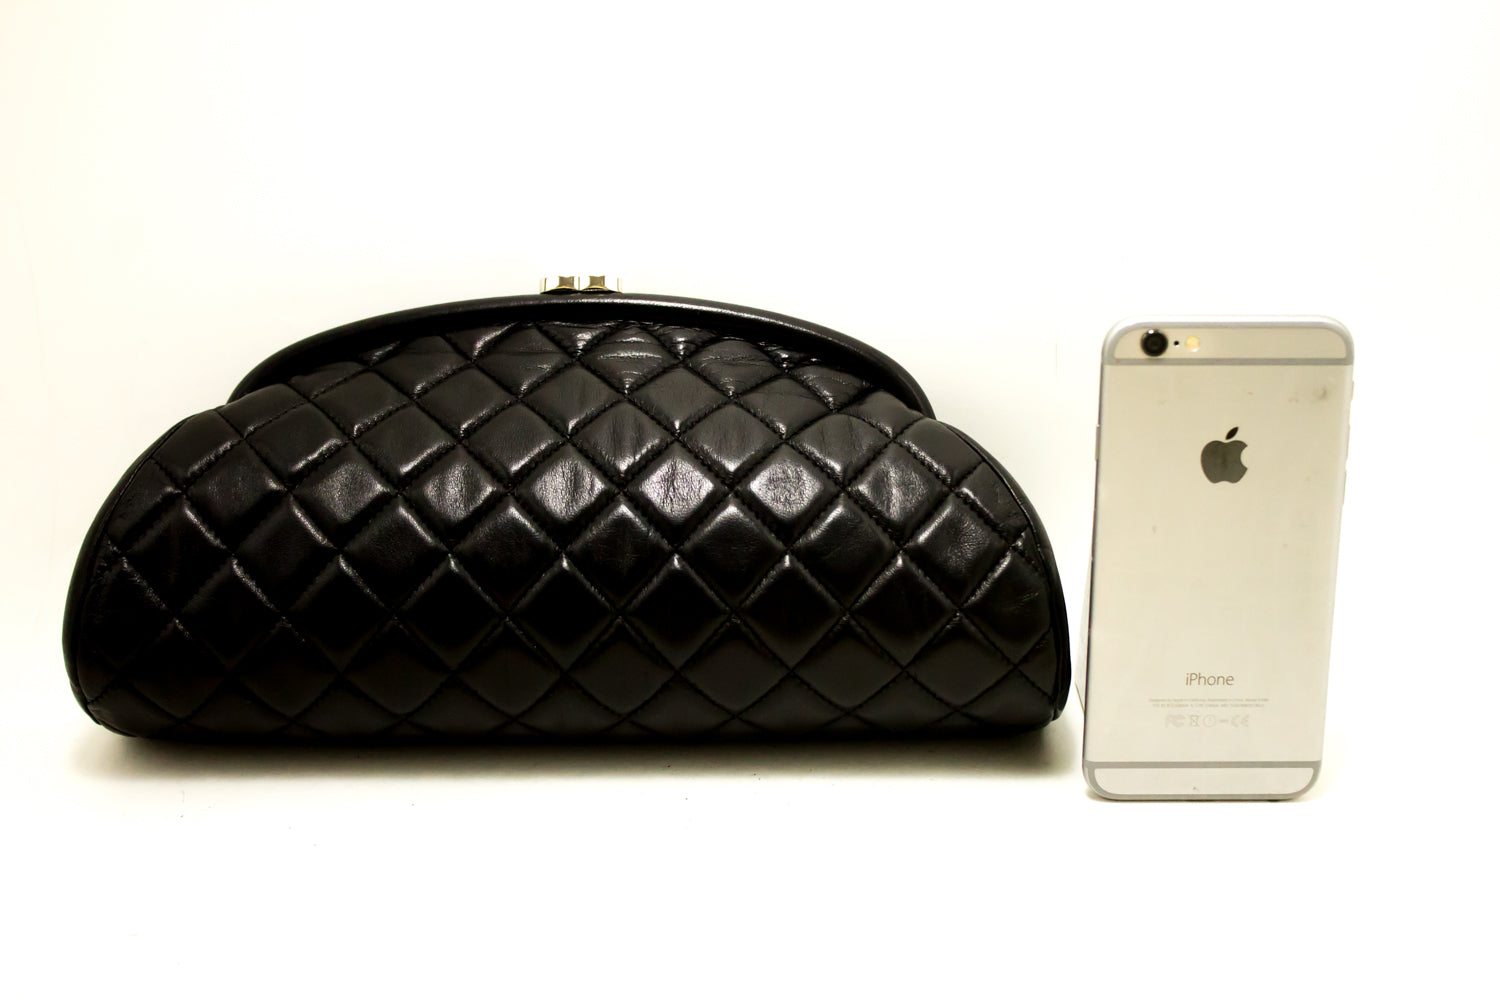 e4e92c7bc3fd ... CHANEL Lambskin Timeless Clutch Bag Black Quilted Leather Silver m60- Chanel-hannari-shop ...